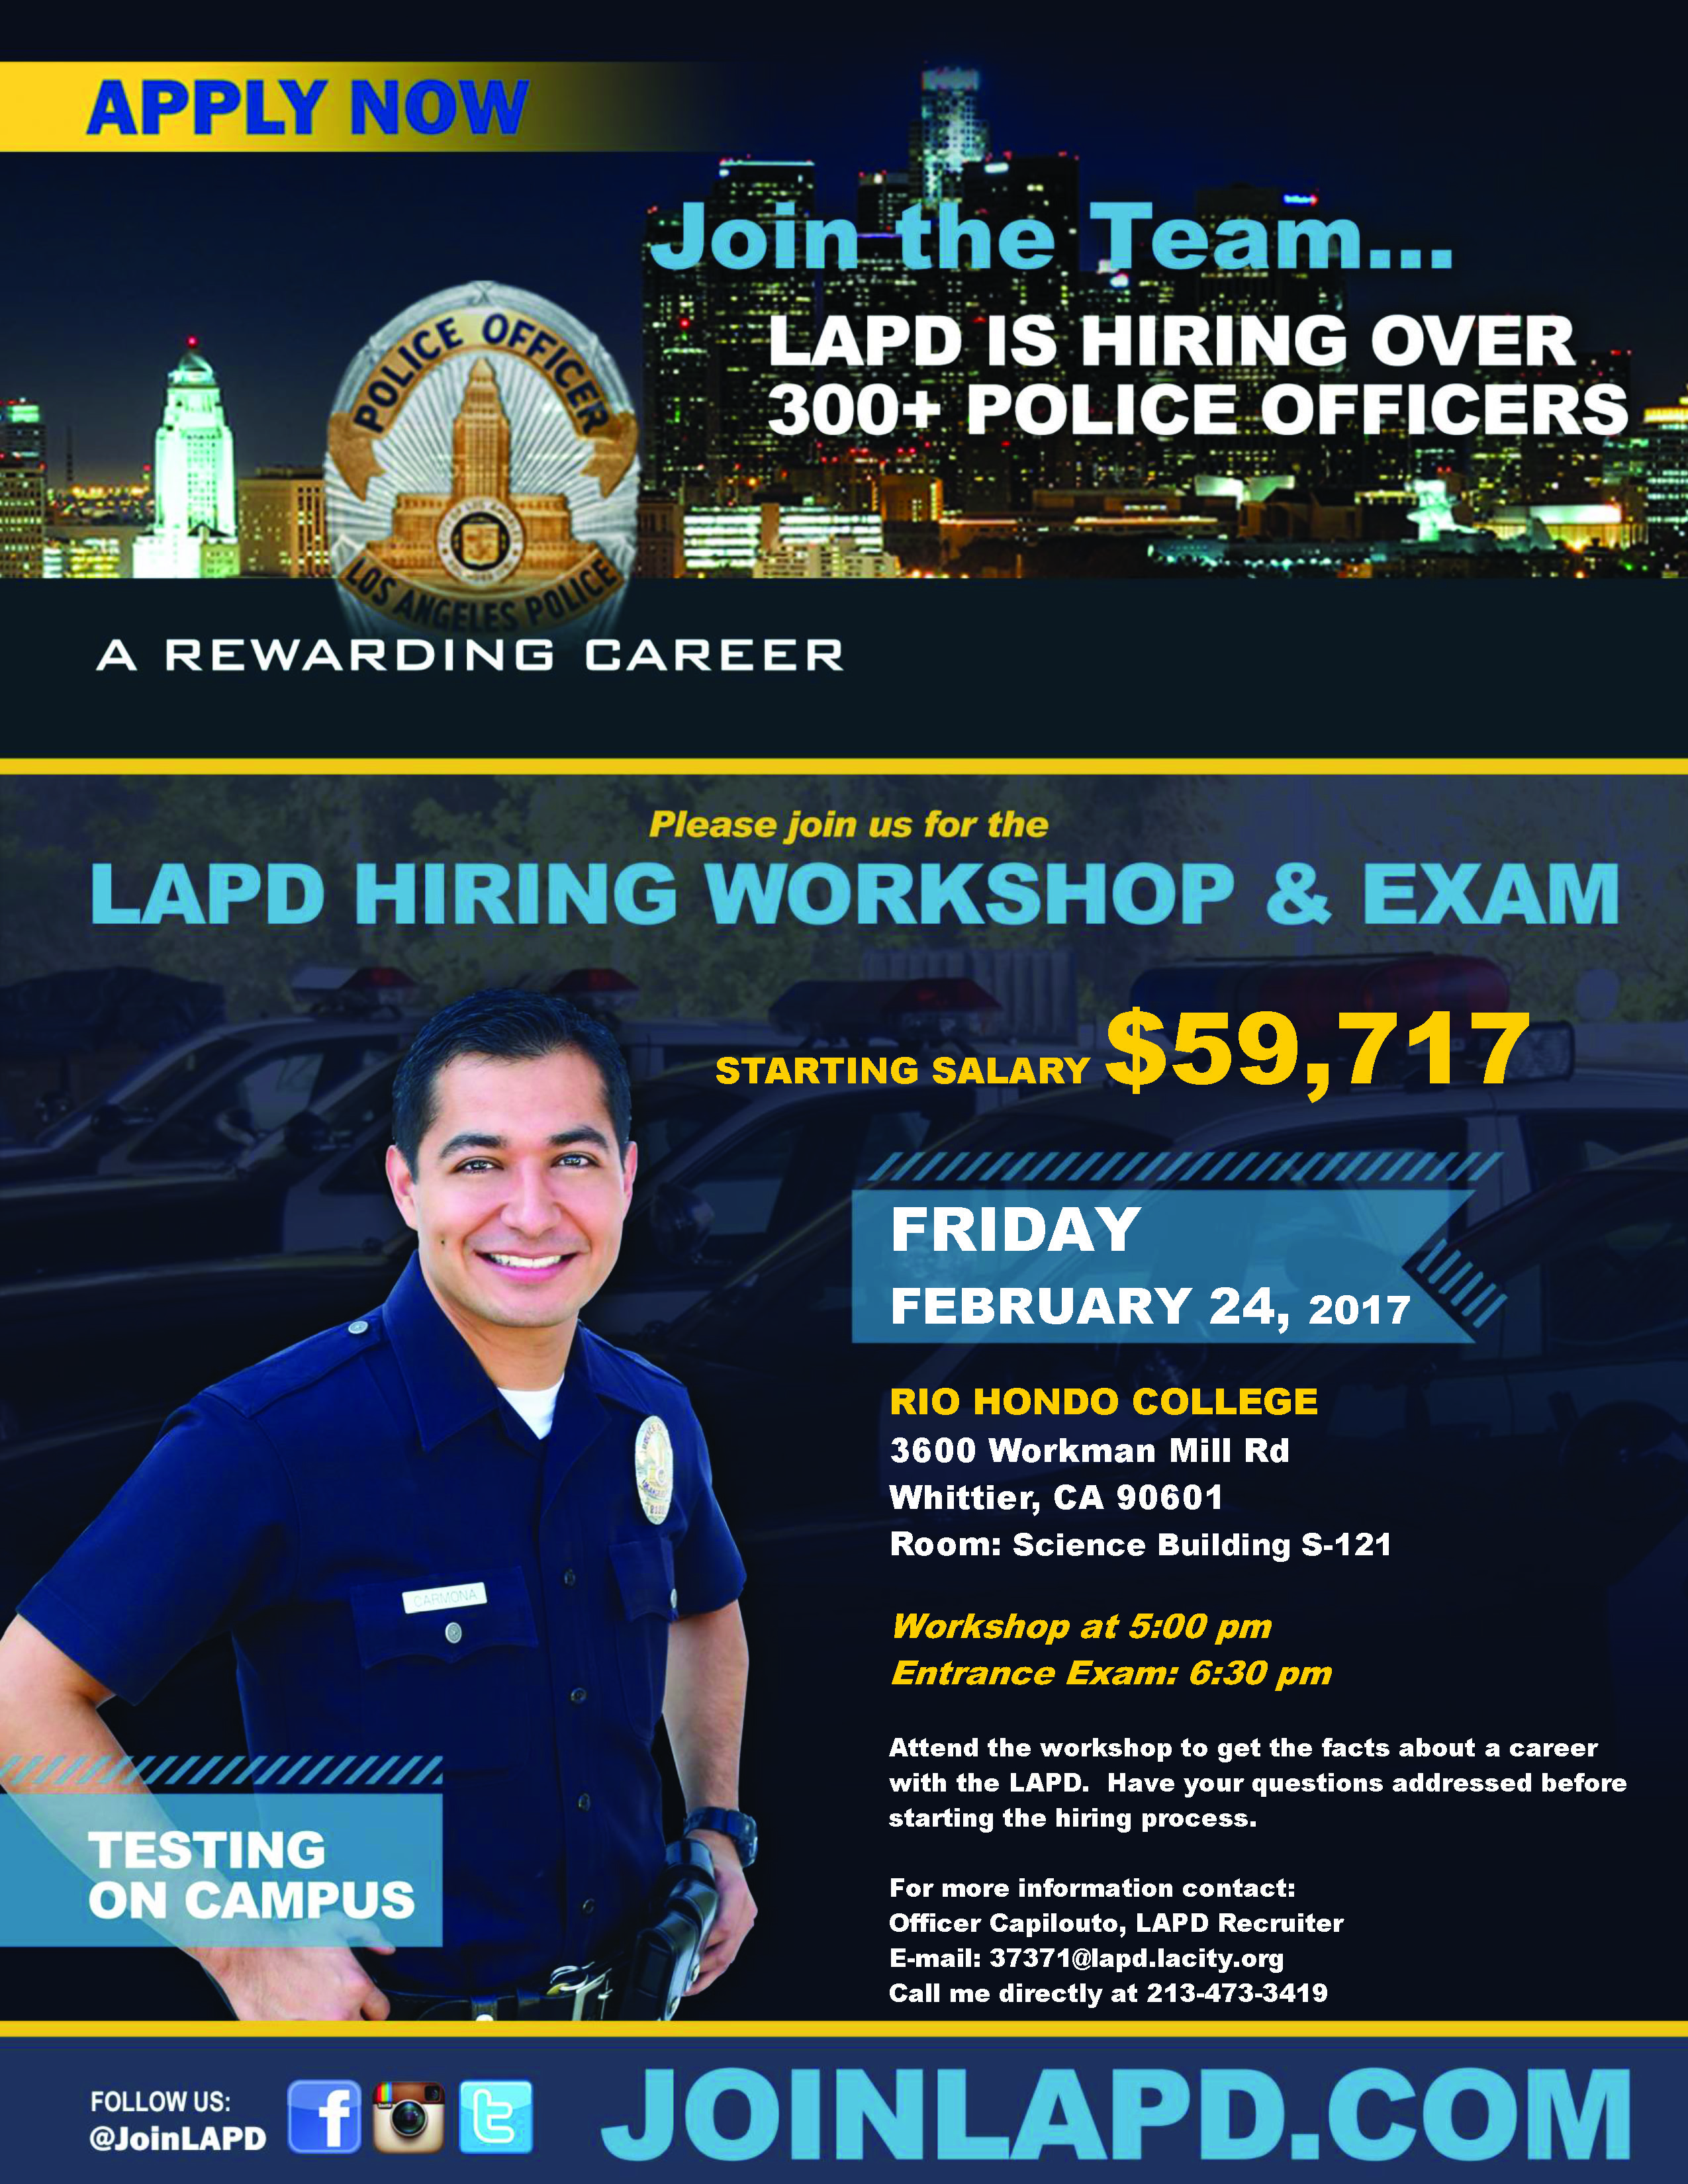 Santa Fe College Calendar >> LAPD Hiring Workshop & Exam | Rio Hondo College